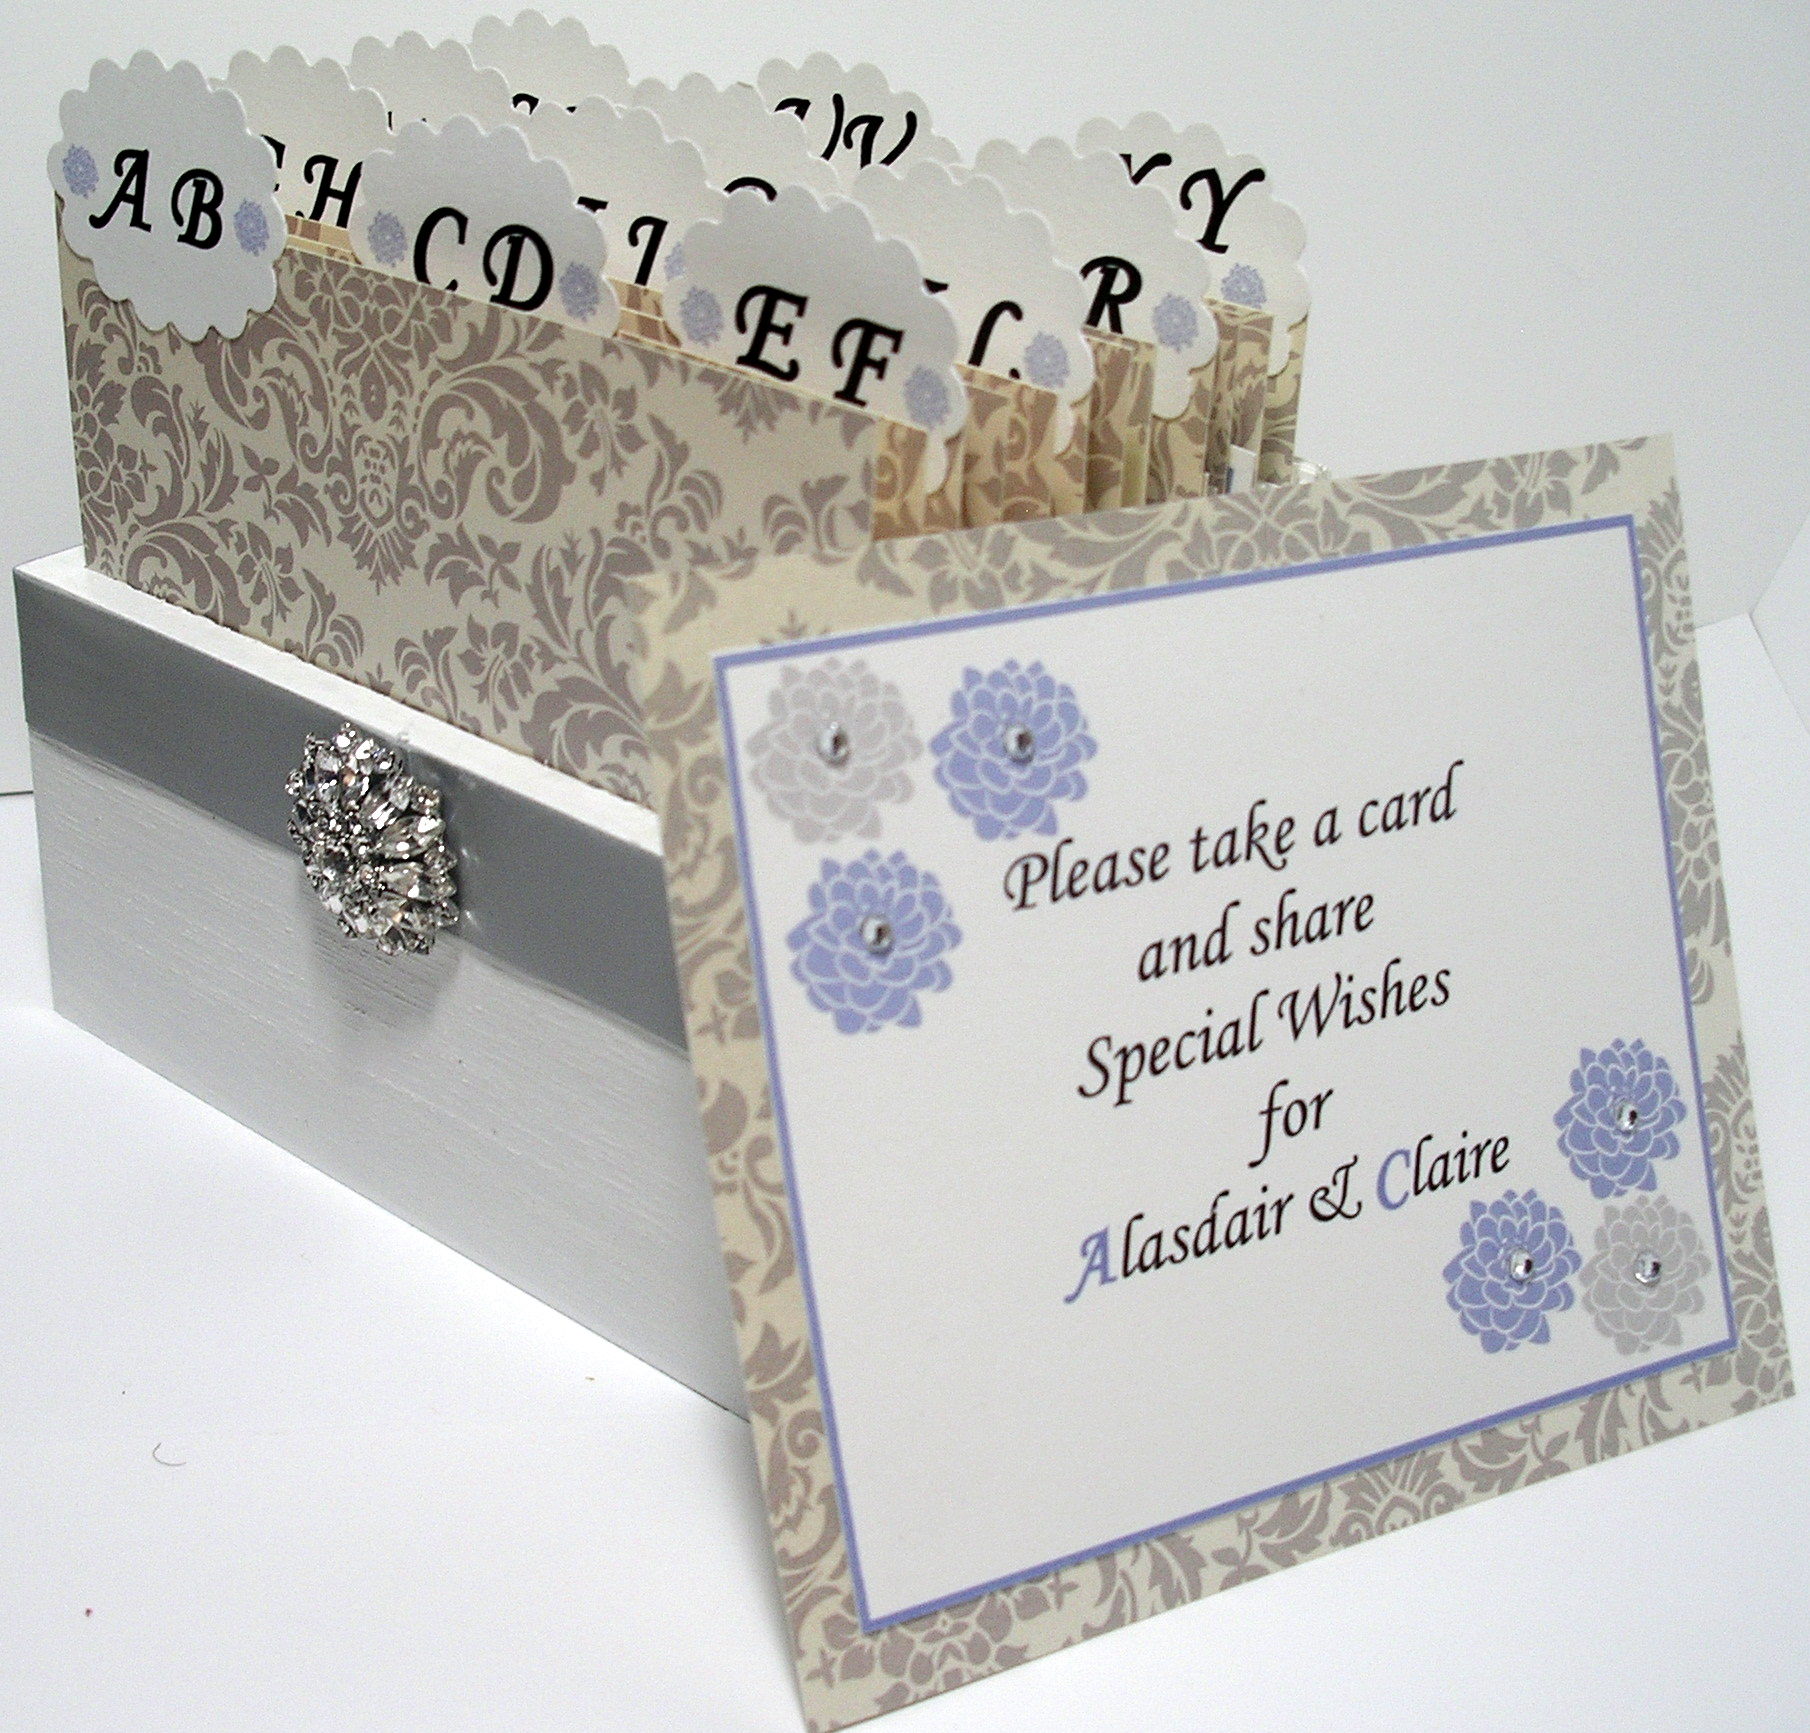 Custom Wedding Guest Box & Cards - Damask Grey, White And Powder ...